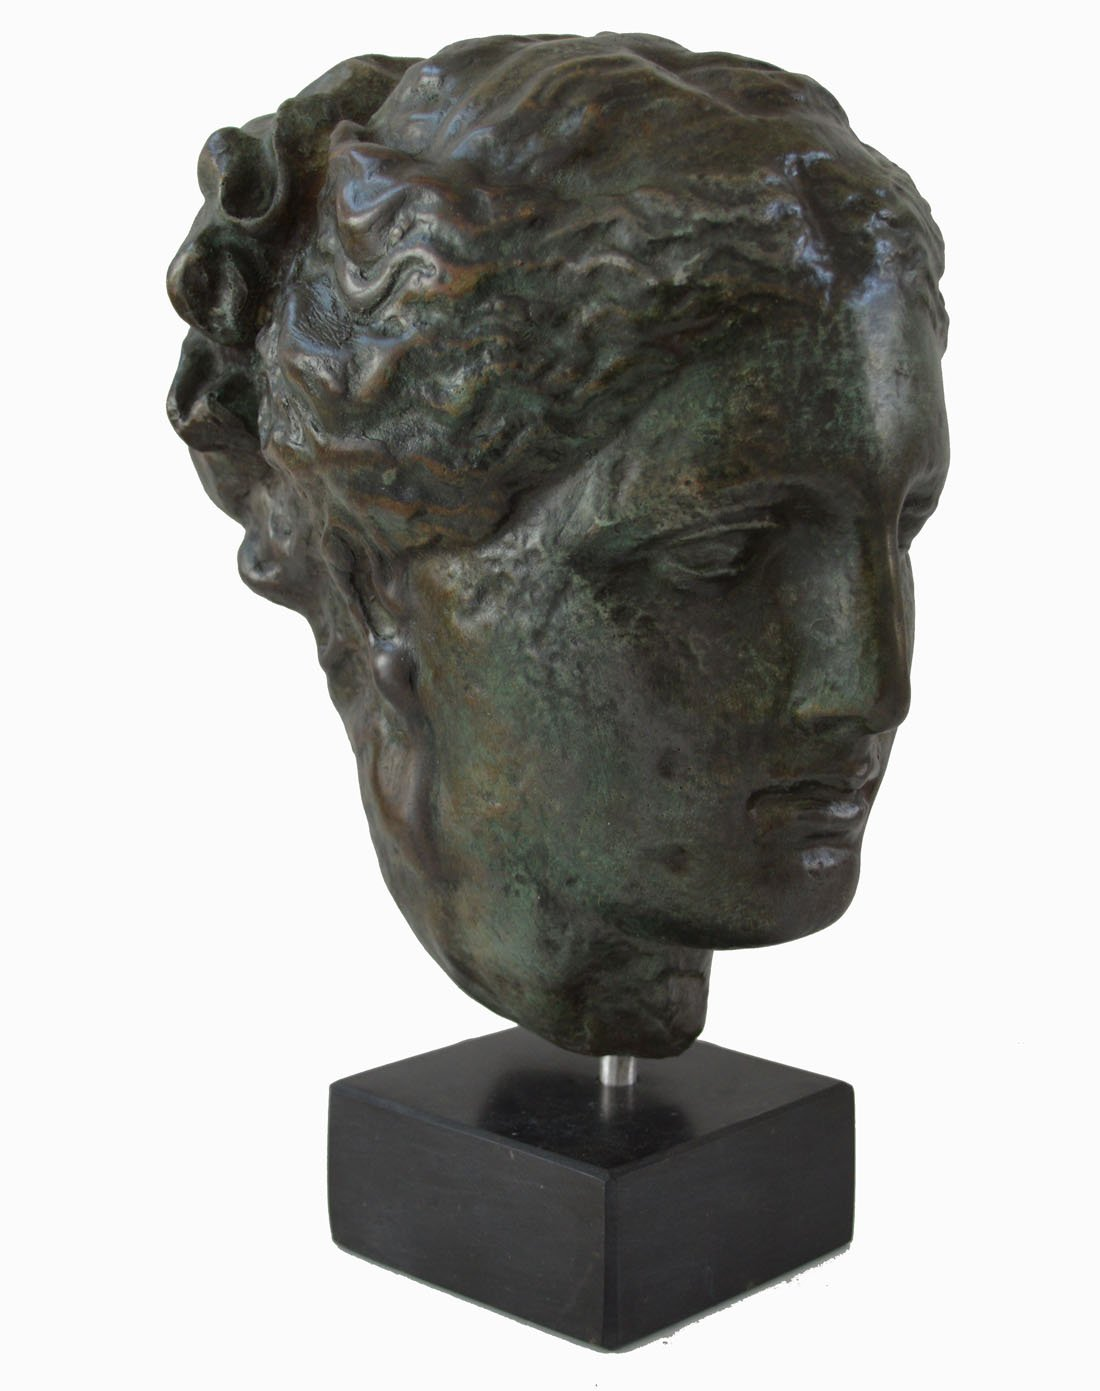 Hygieia bust with bronze color effect - Ancient Greek Goddess of health Hygeia - museum replica by Estia Creations (Image #2)